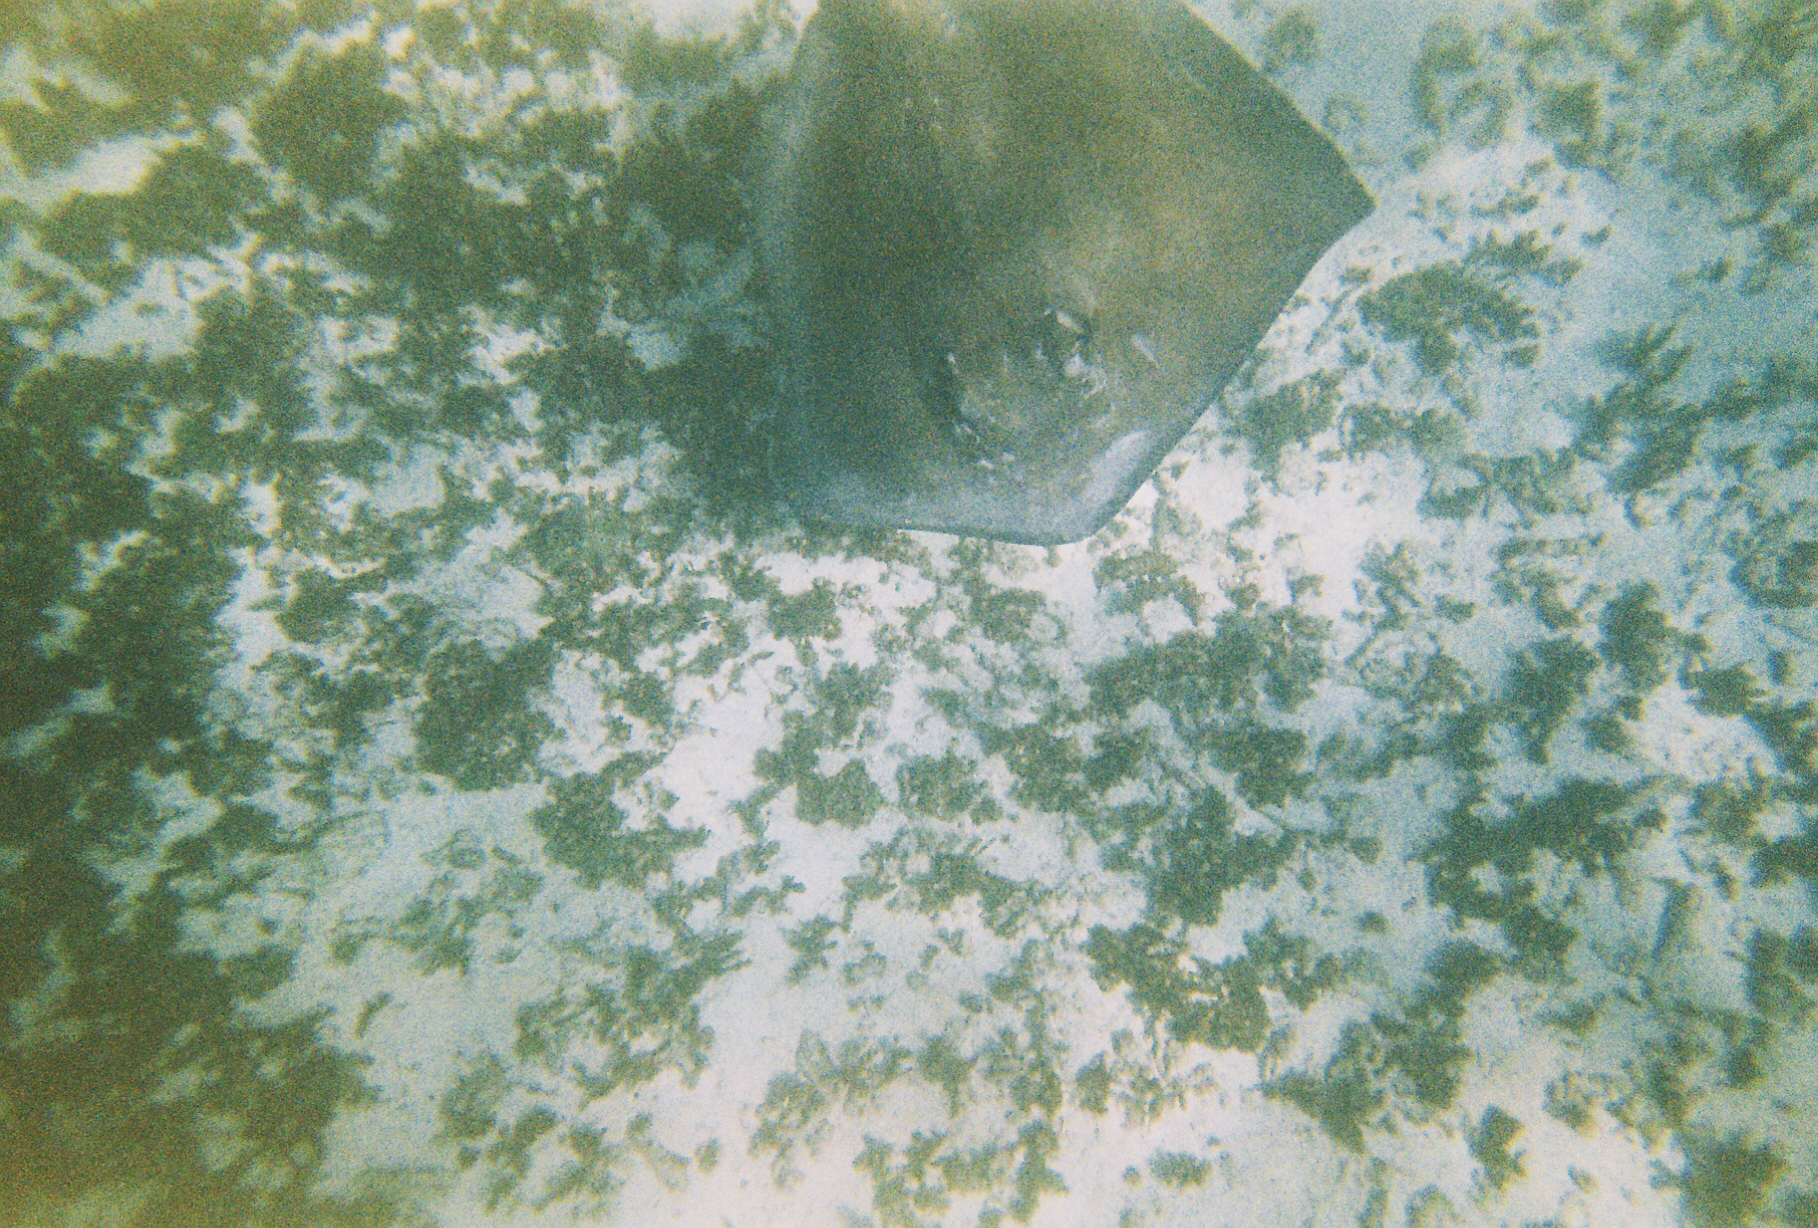 A stingray swimming on the bottom of the ocean off a coral reef in Tulum Mexcio. Underwater expired film photograph. Photographer Nick Barry